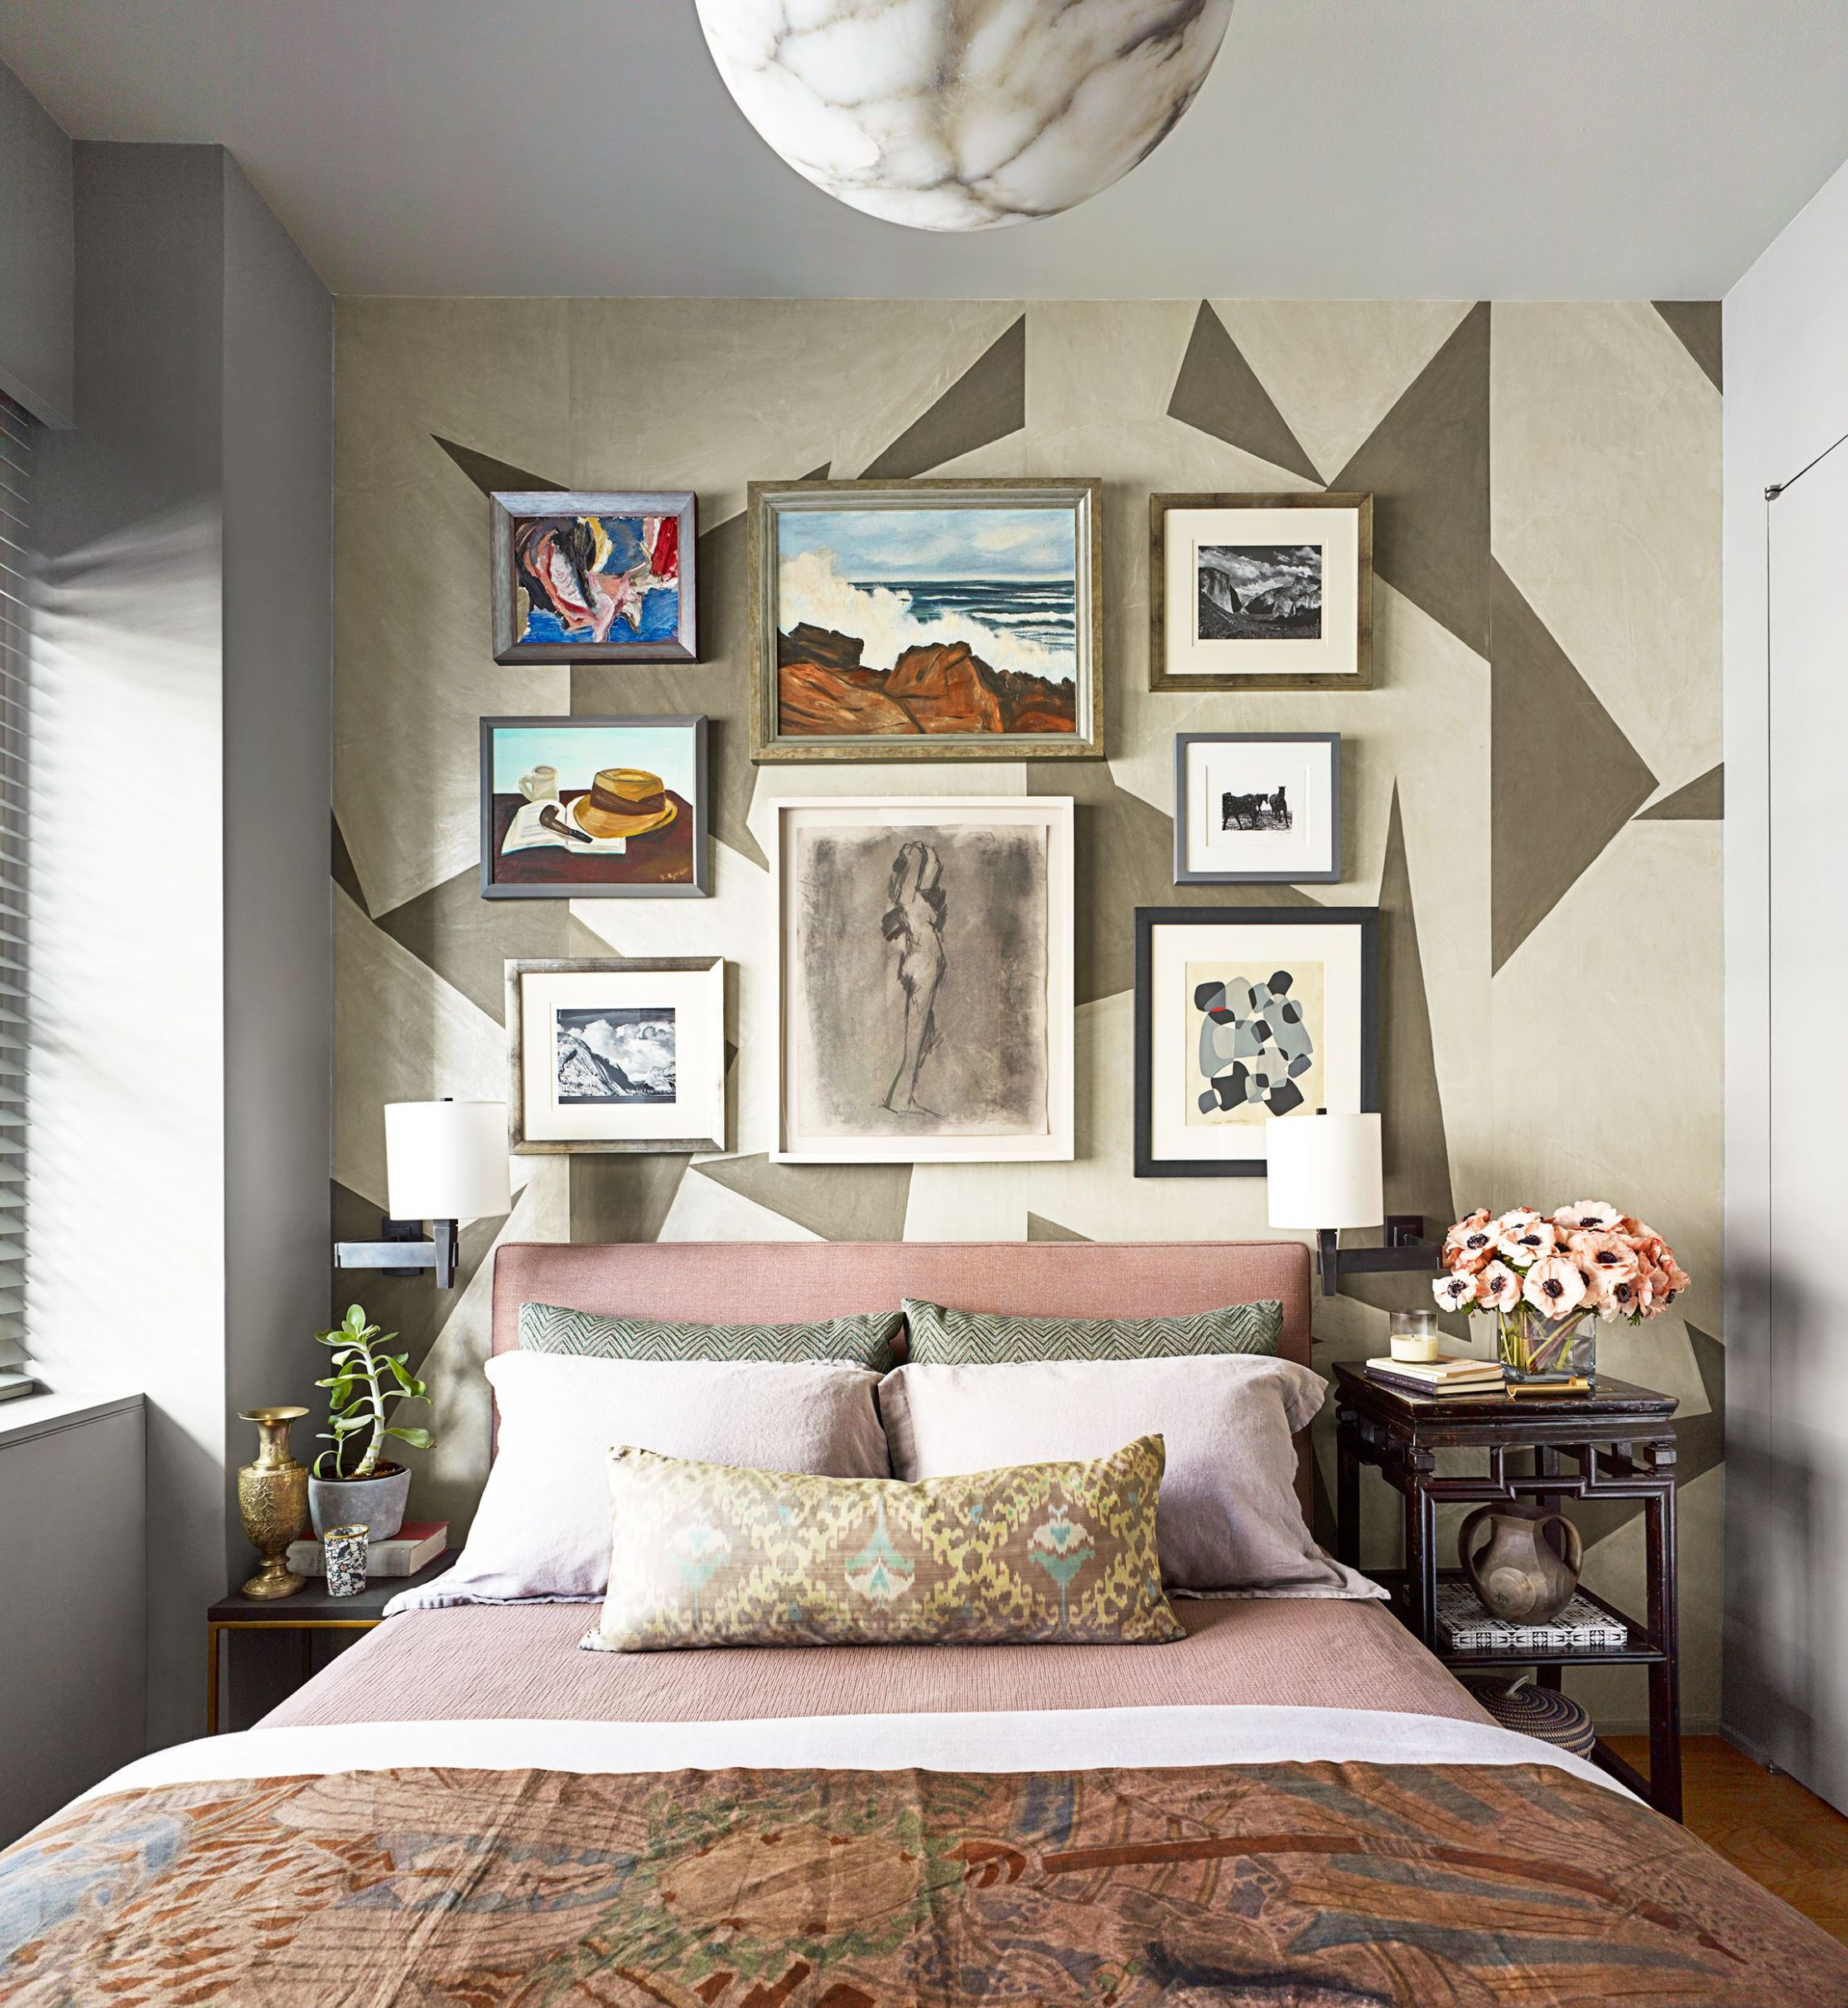 8 Small Bedroom Design Ideas - How to Decorate a Small Bedroom - bedroom ideas no windows